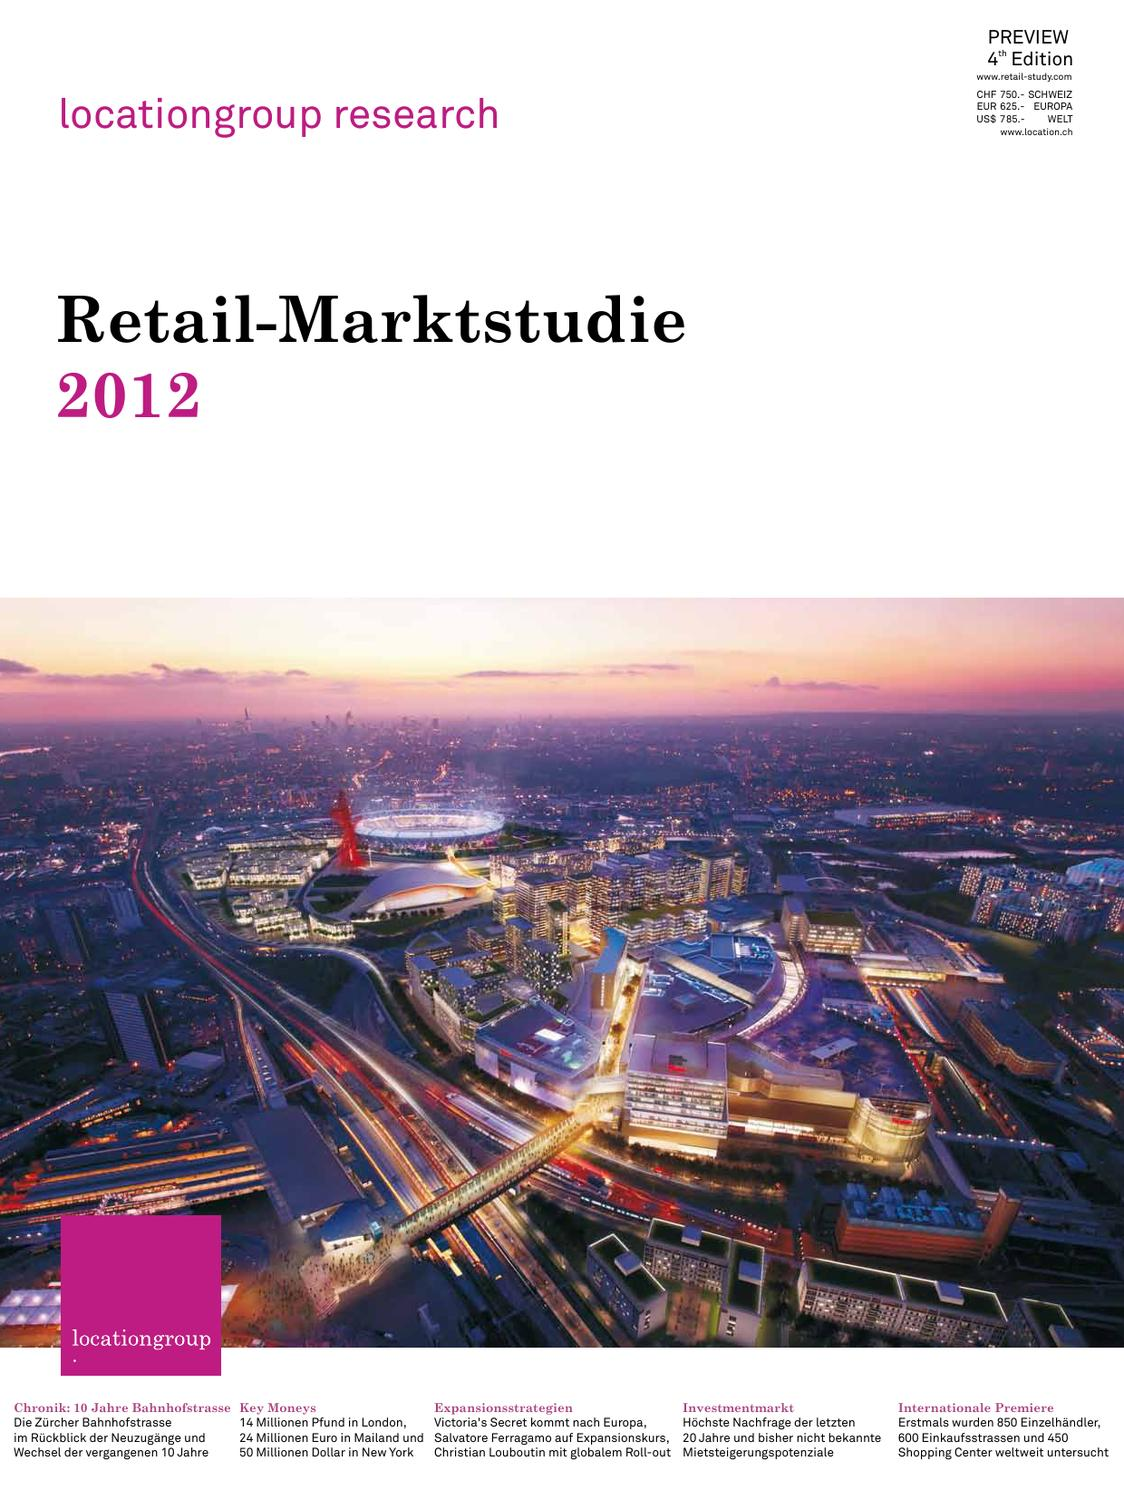 Retail Market Study 2012 Preview by The Location Group issuu